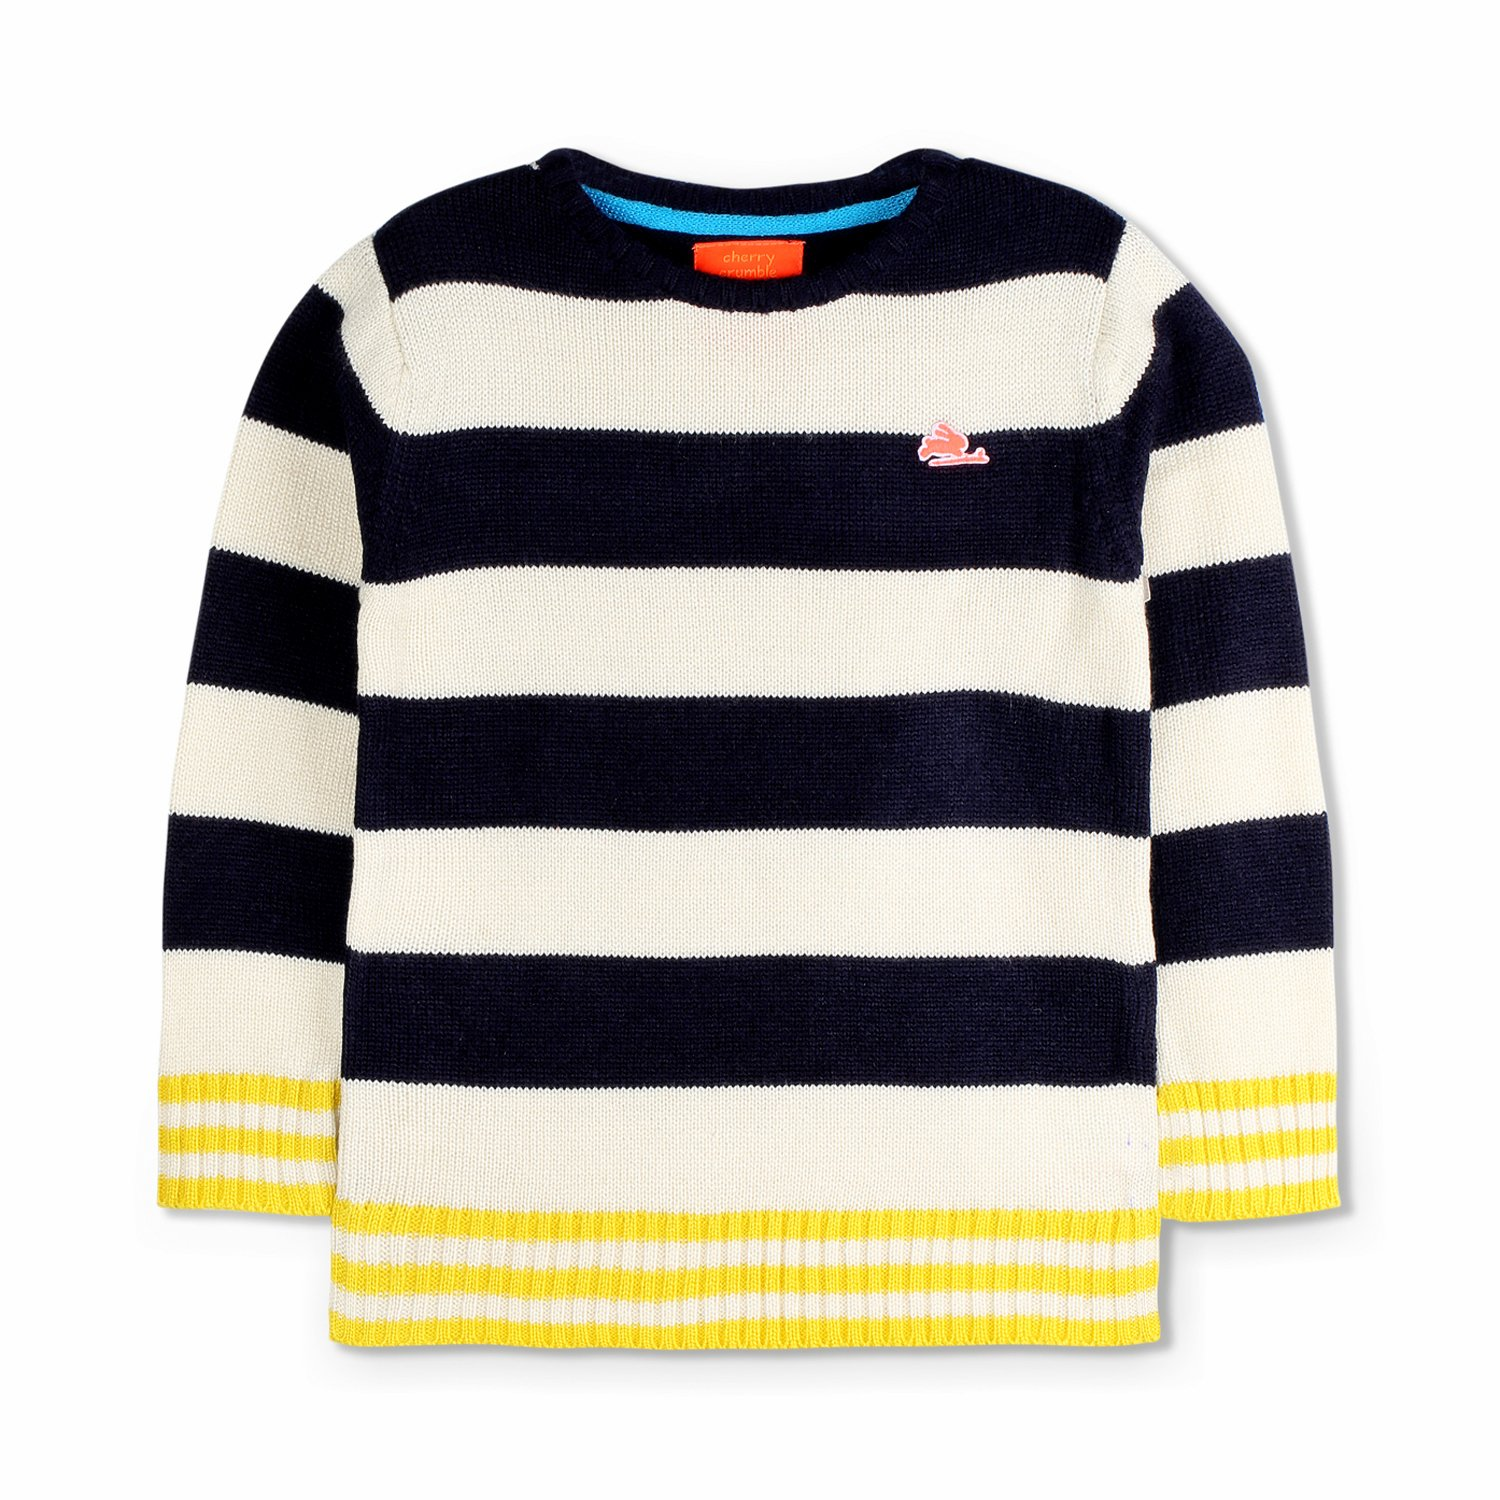 Cherry Crumble Lightweight Layer Sweater for Boys /& Girls